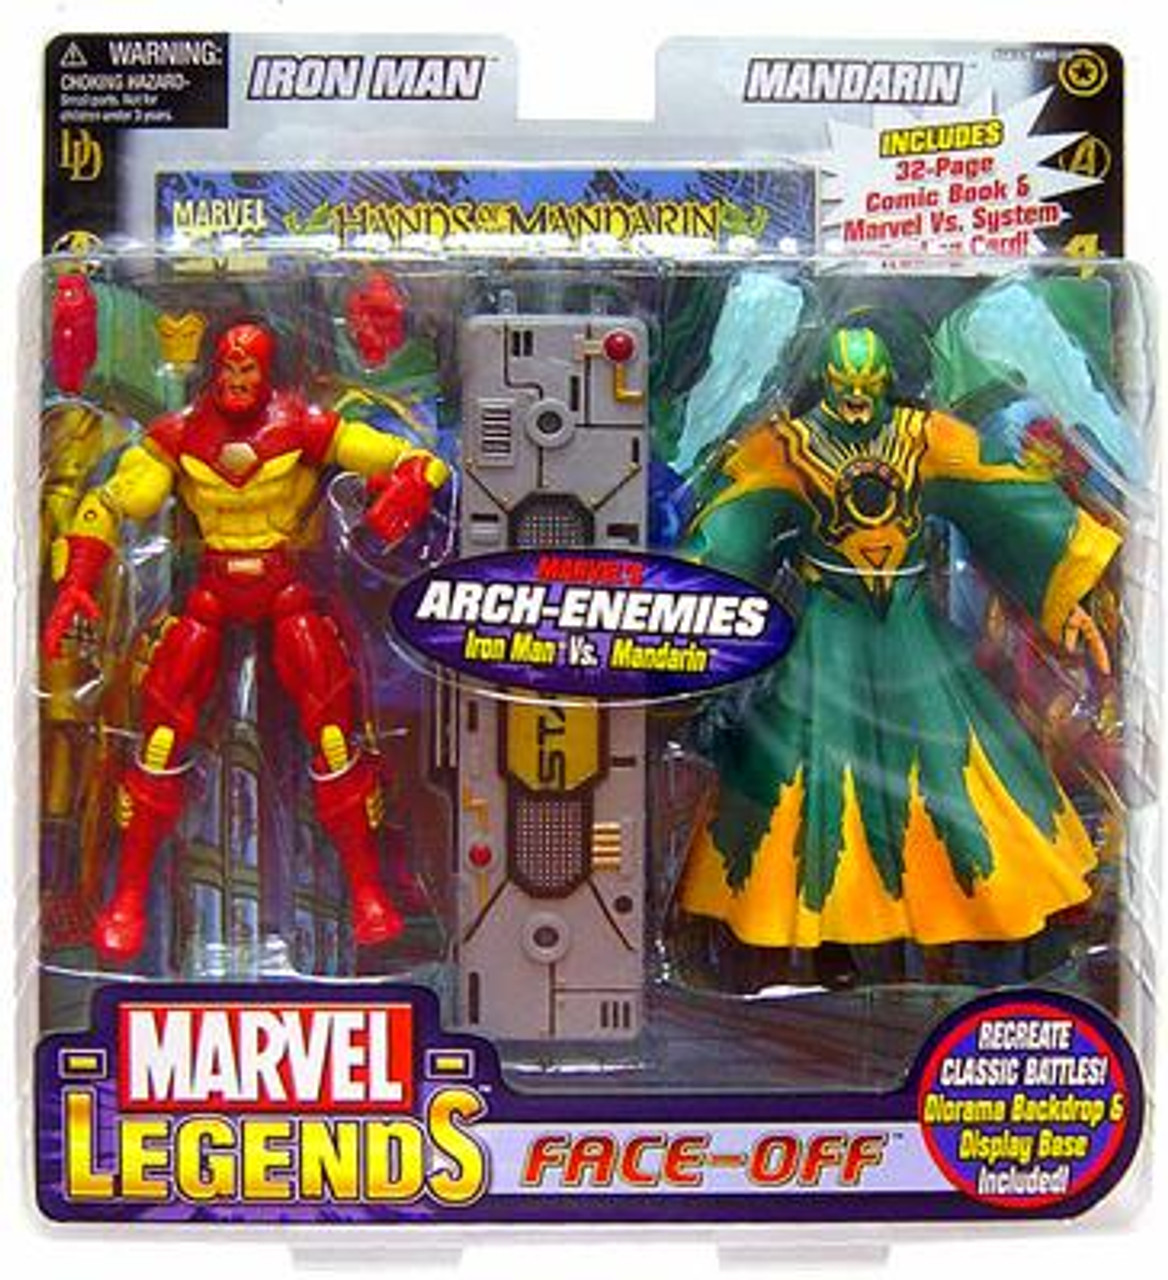 Marvel Legends Face Off Series 2 Iron Man vs. Mandarin Action Figure